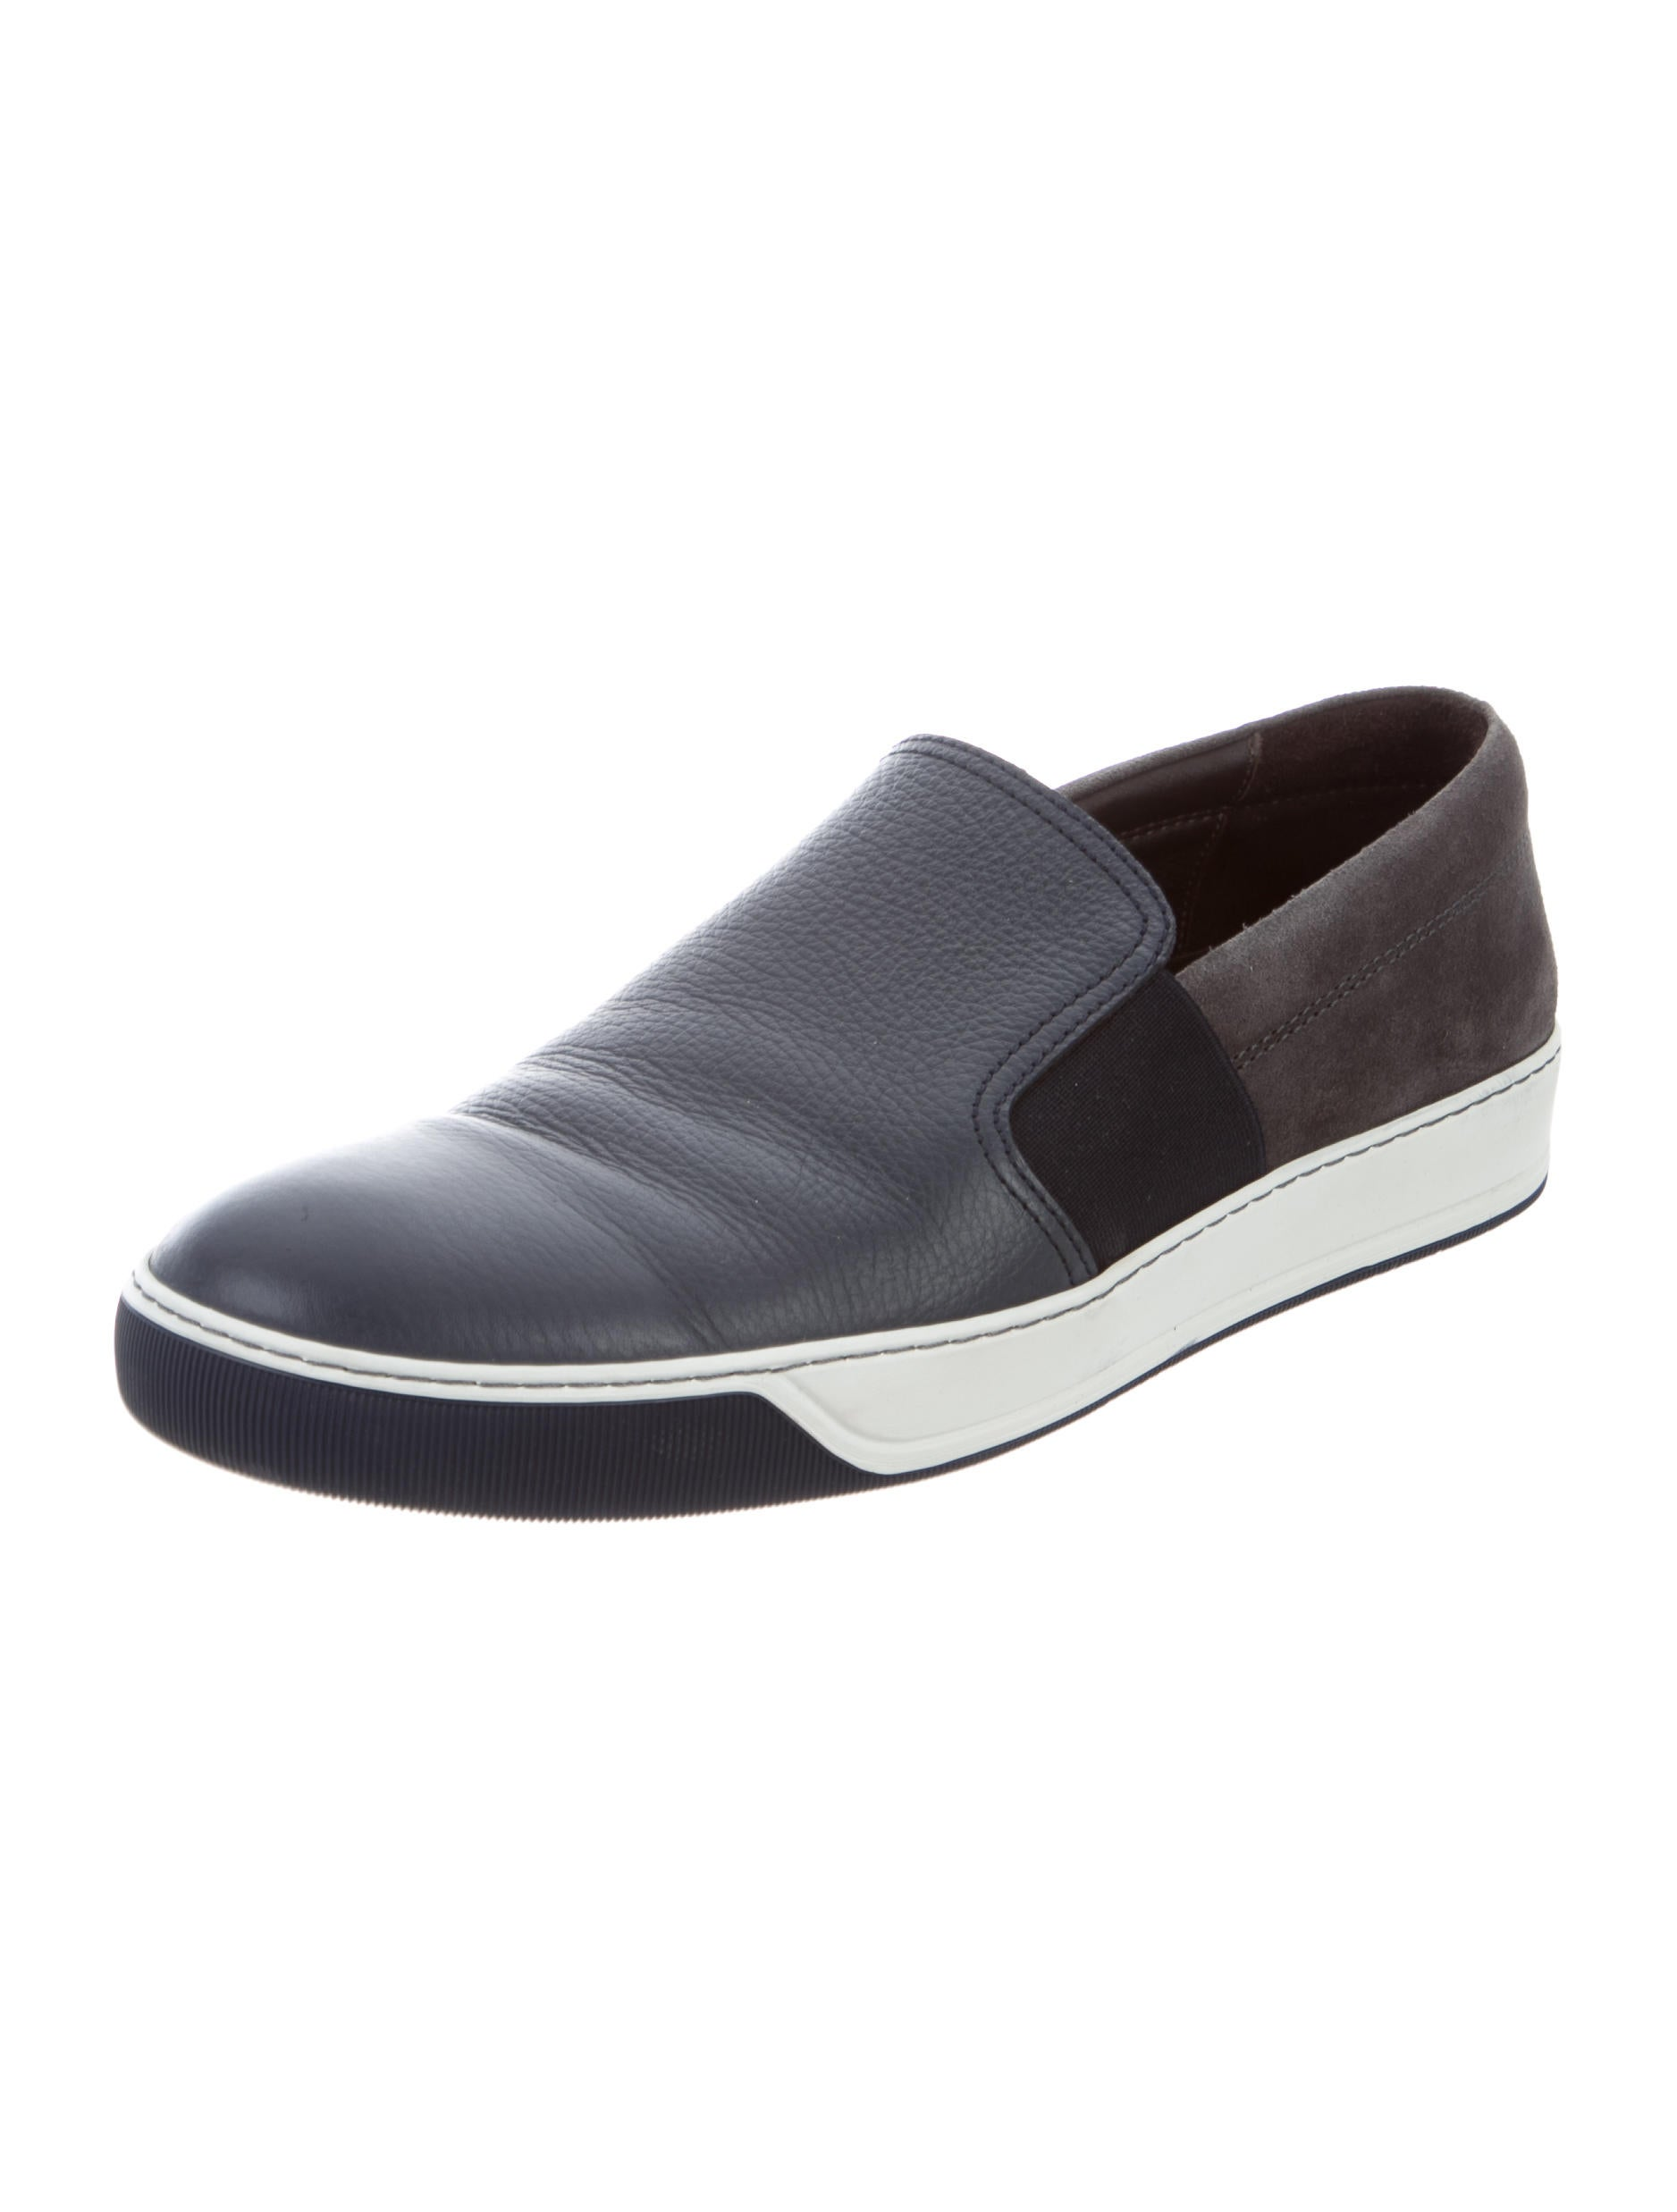 Leather slip-on sneaker featuring gore insets and textured wraparound midsole. SOREL Women's CAMPSNEAK Slip ON Sneaker. by SOREL. $ - $ $ 42 $ 76 Prime. FREE Shipping on eligible orders. Some sizes/colors are Prime eligible. out of 5 stars 8. Product Features.